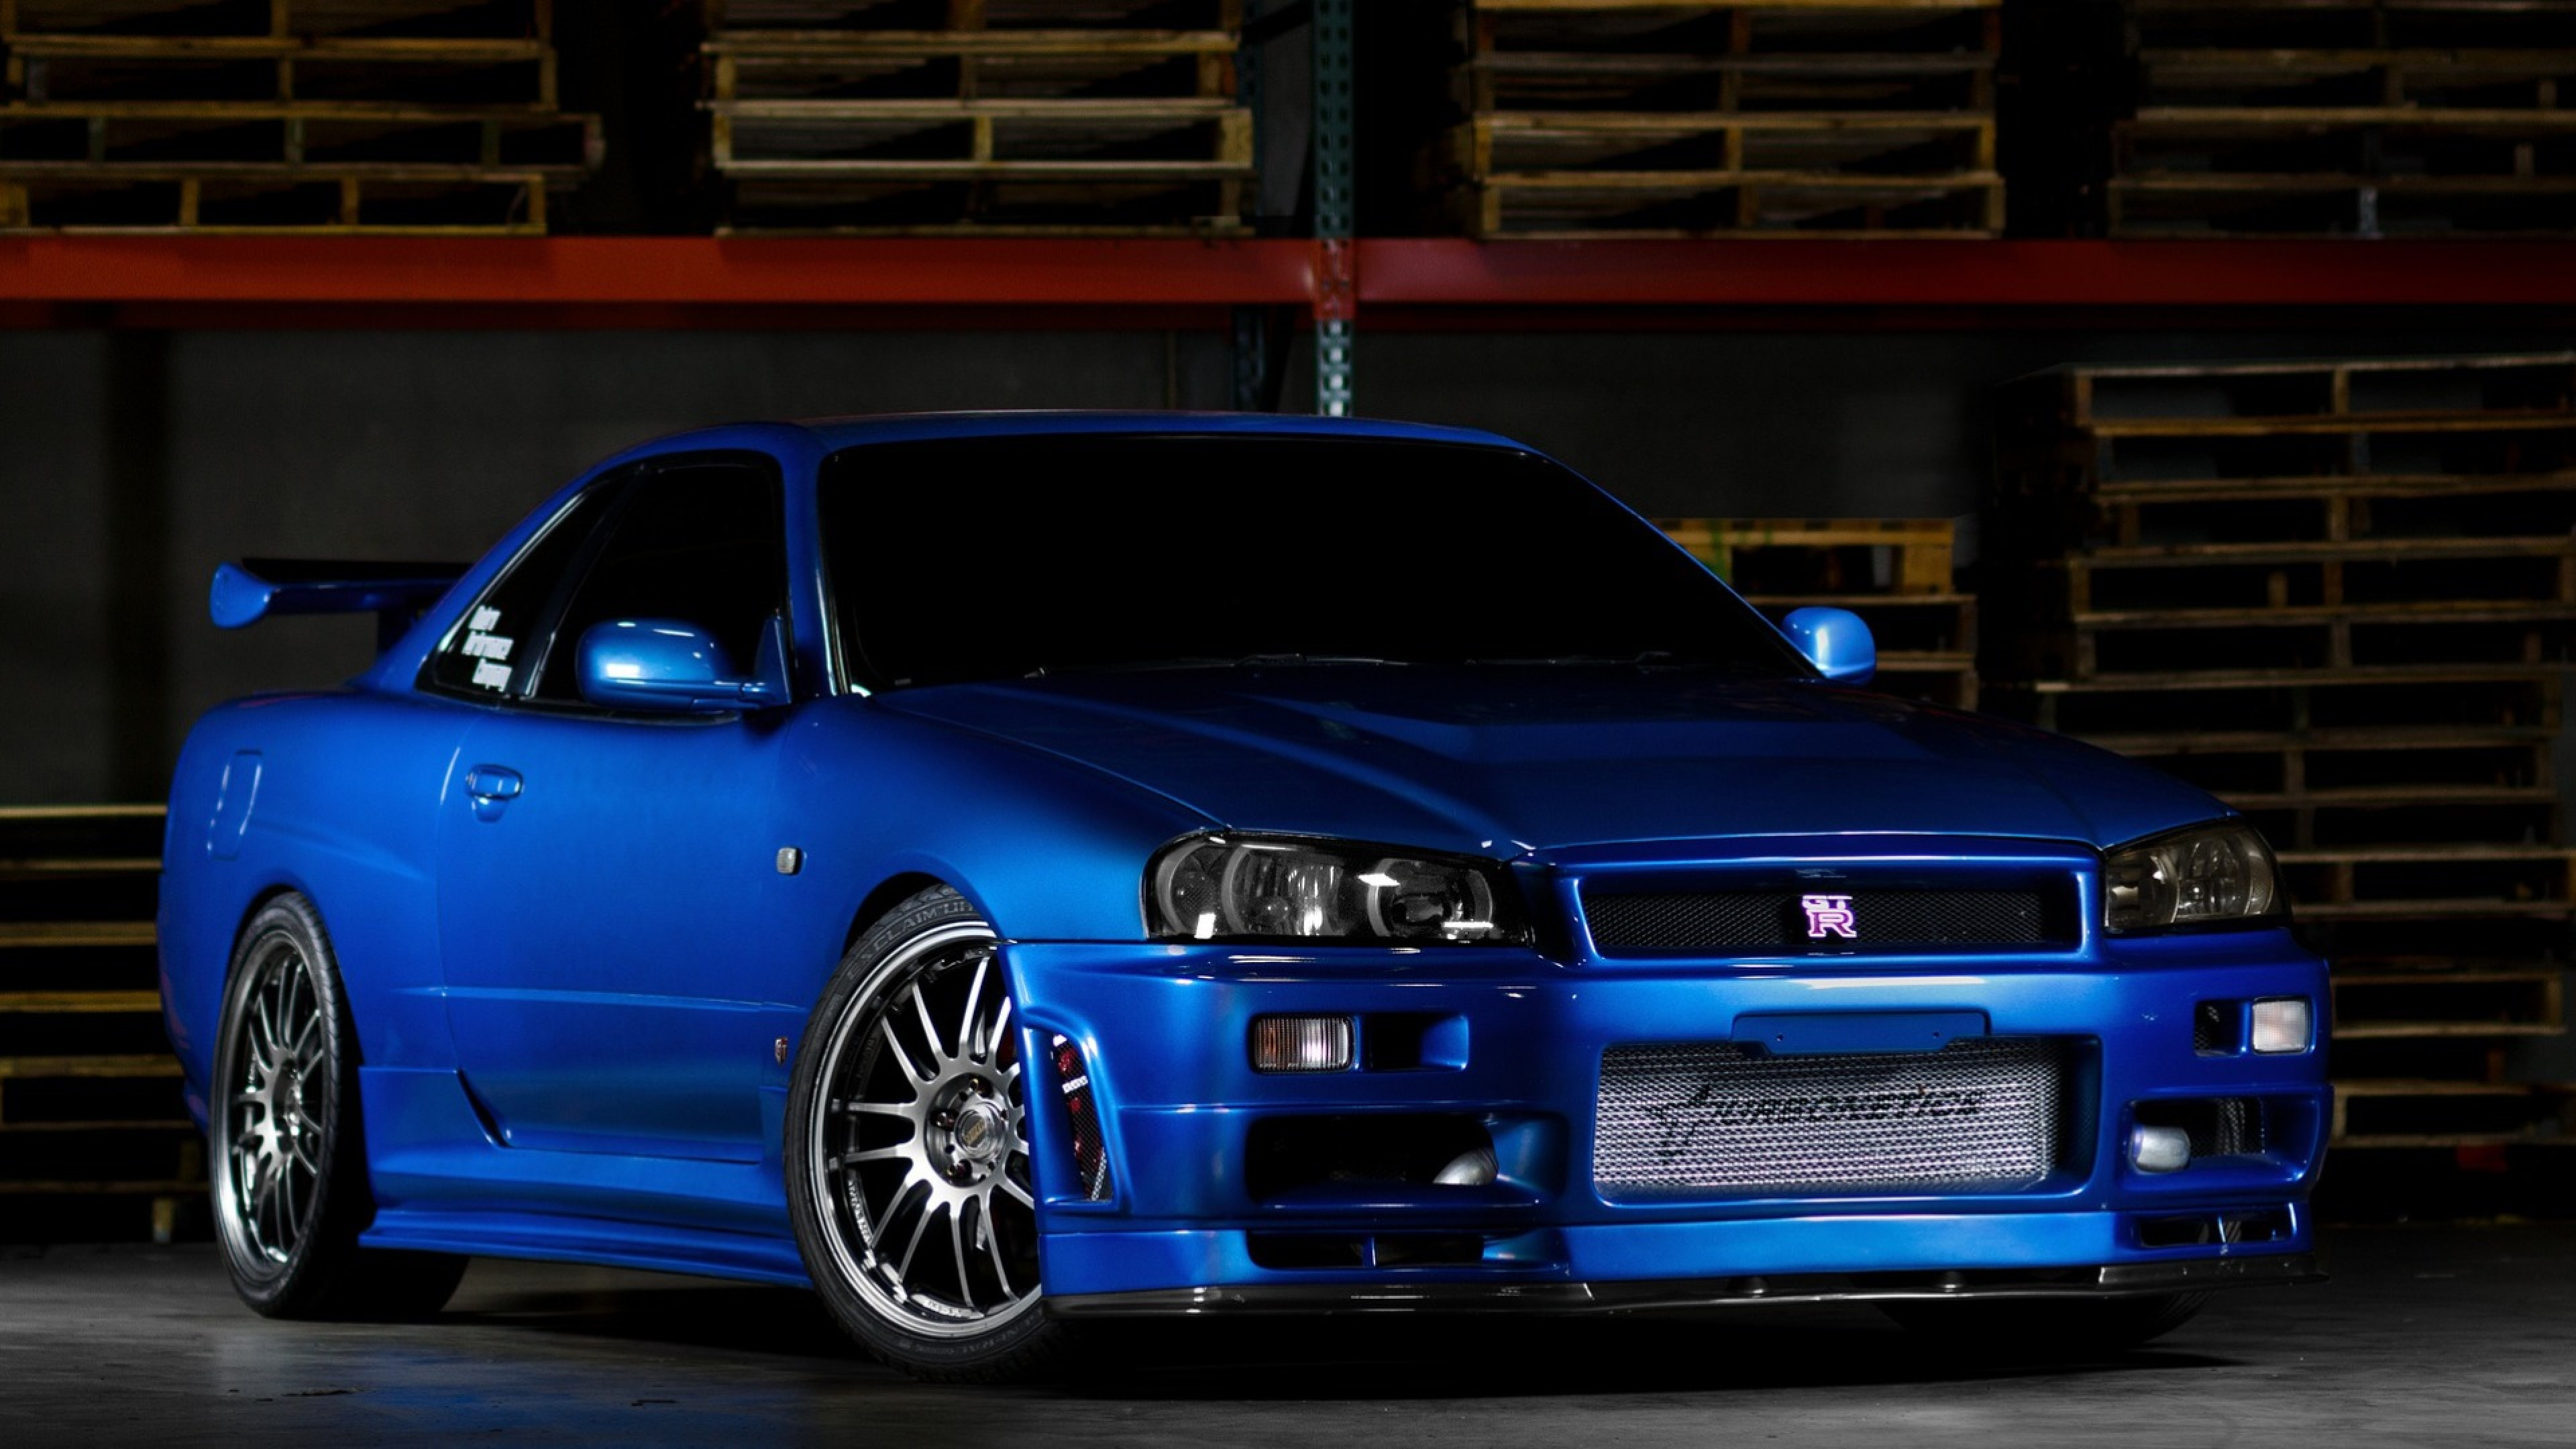 3840x2160 Preview wallpaper nissan skyline, gtr, r34, blue, front view